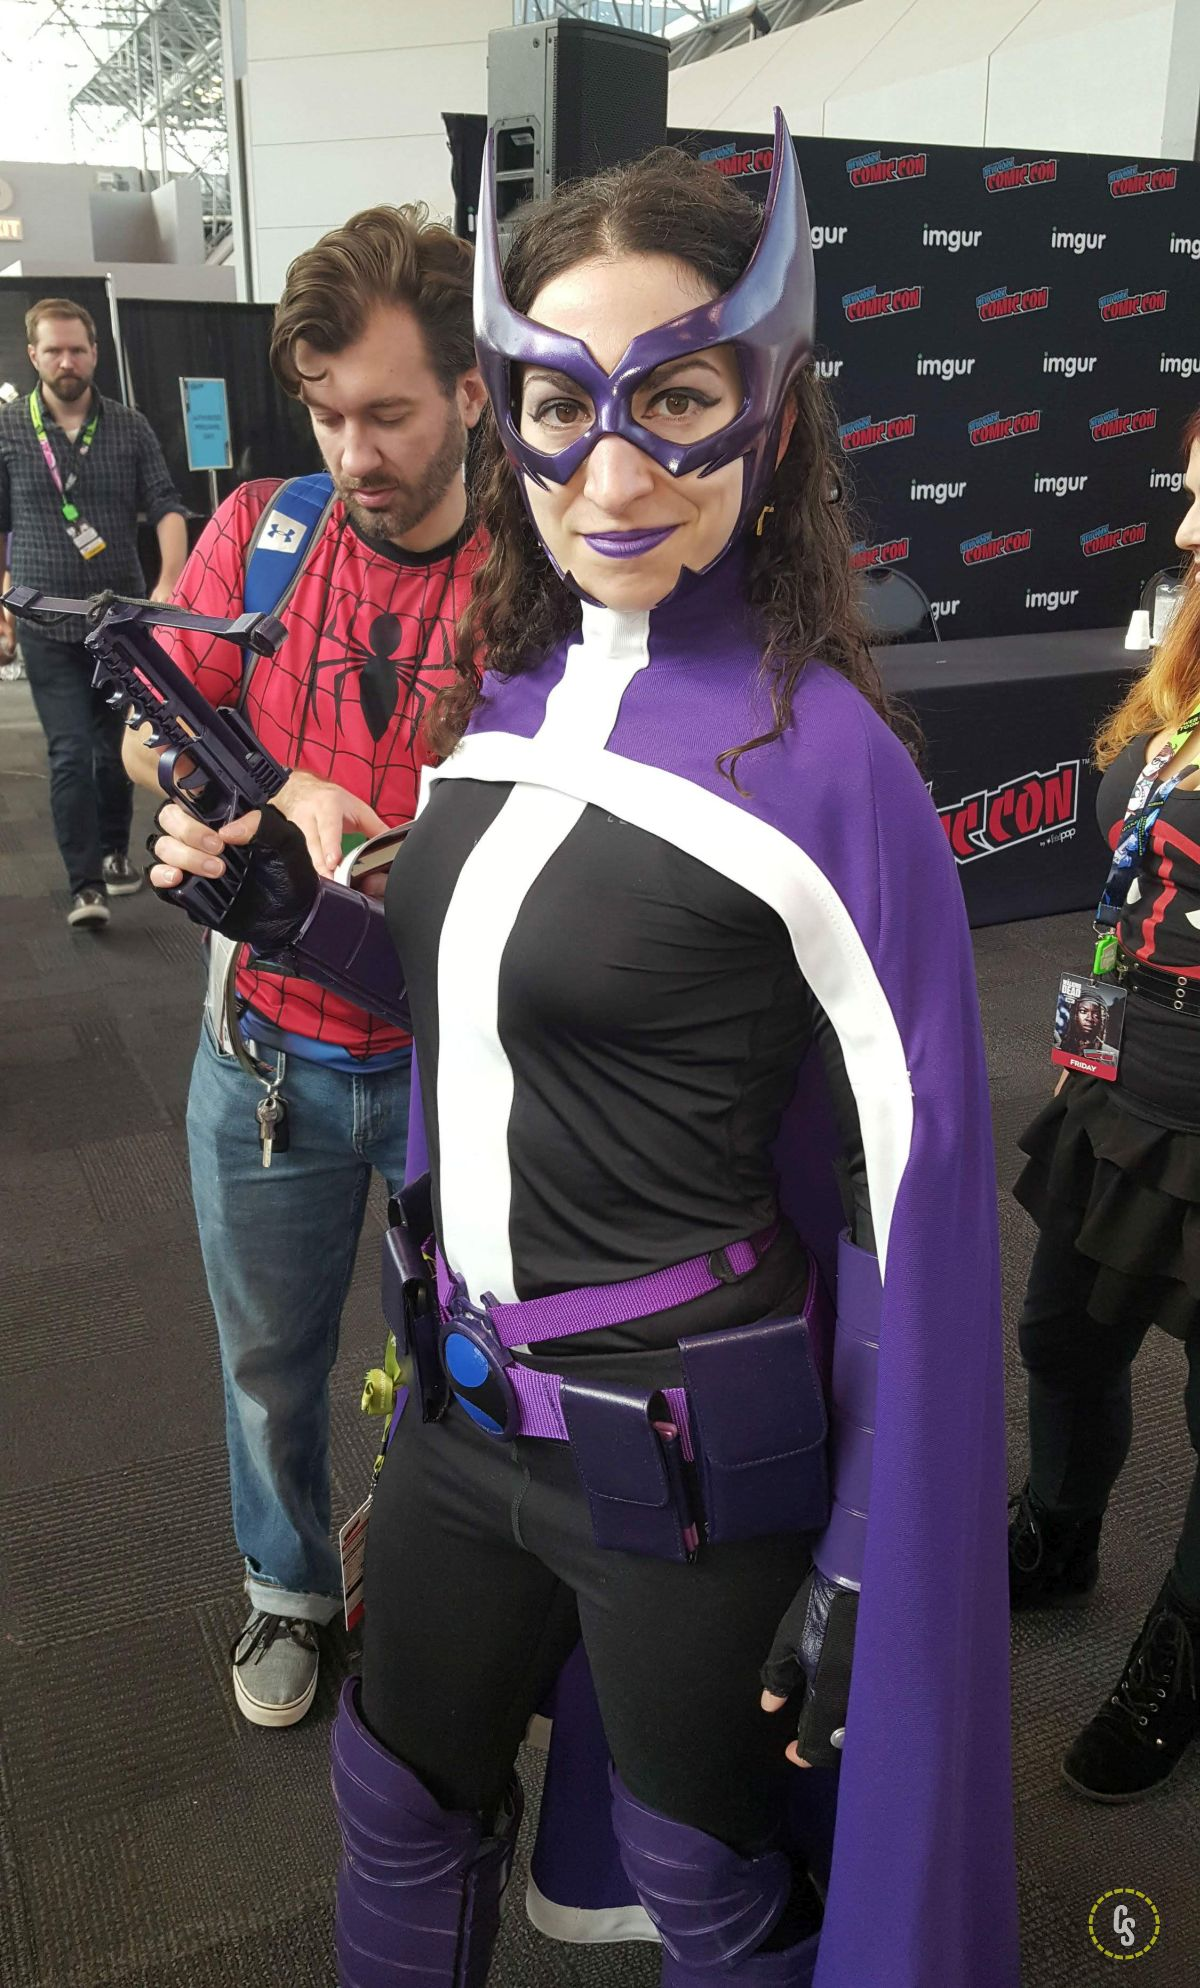 nycc182_085